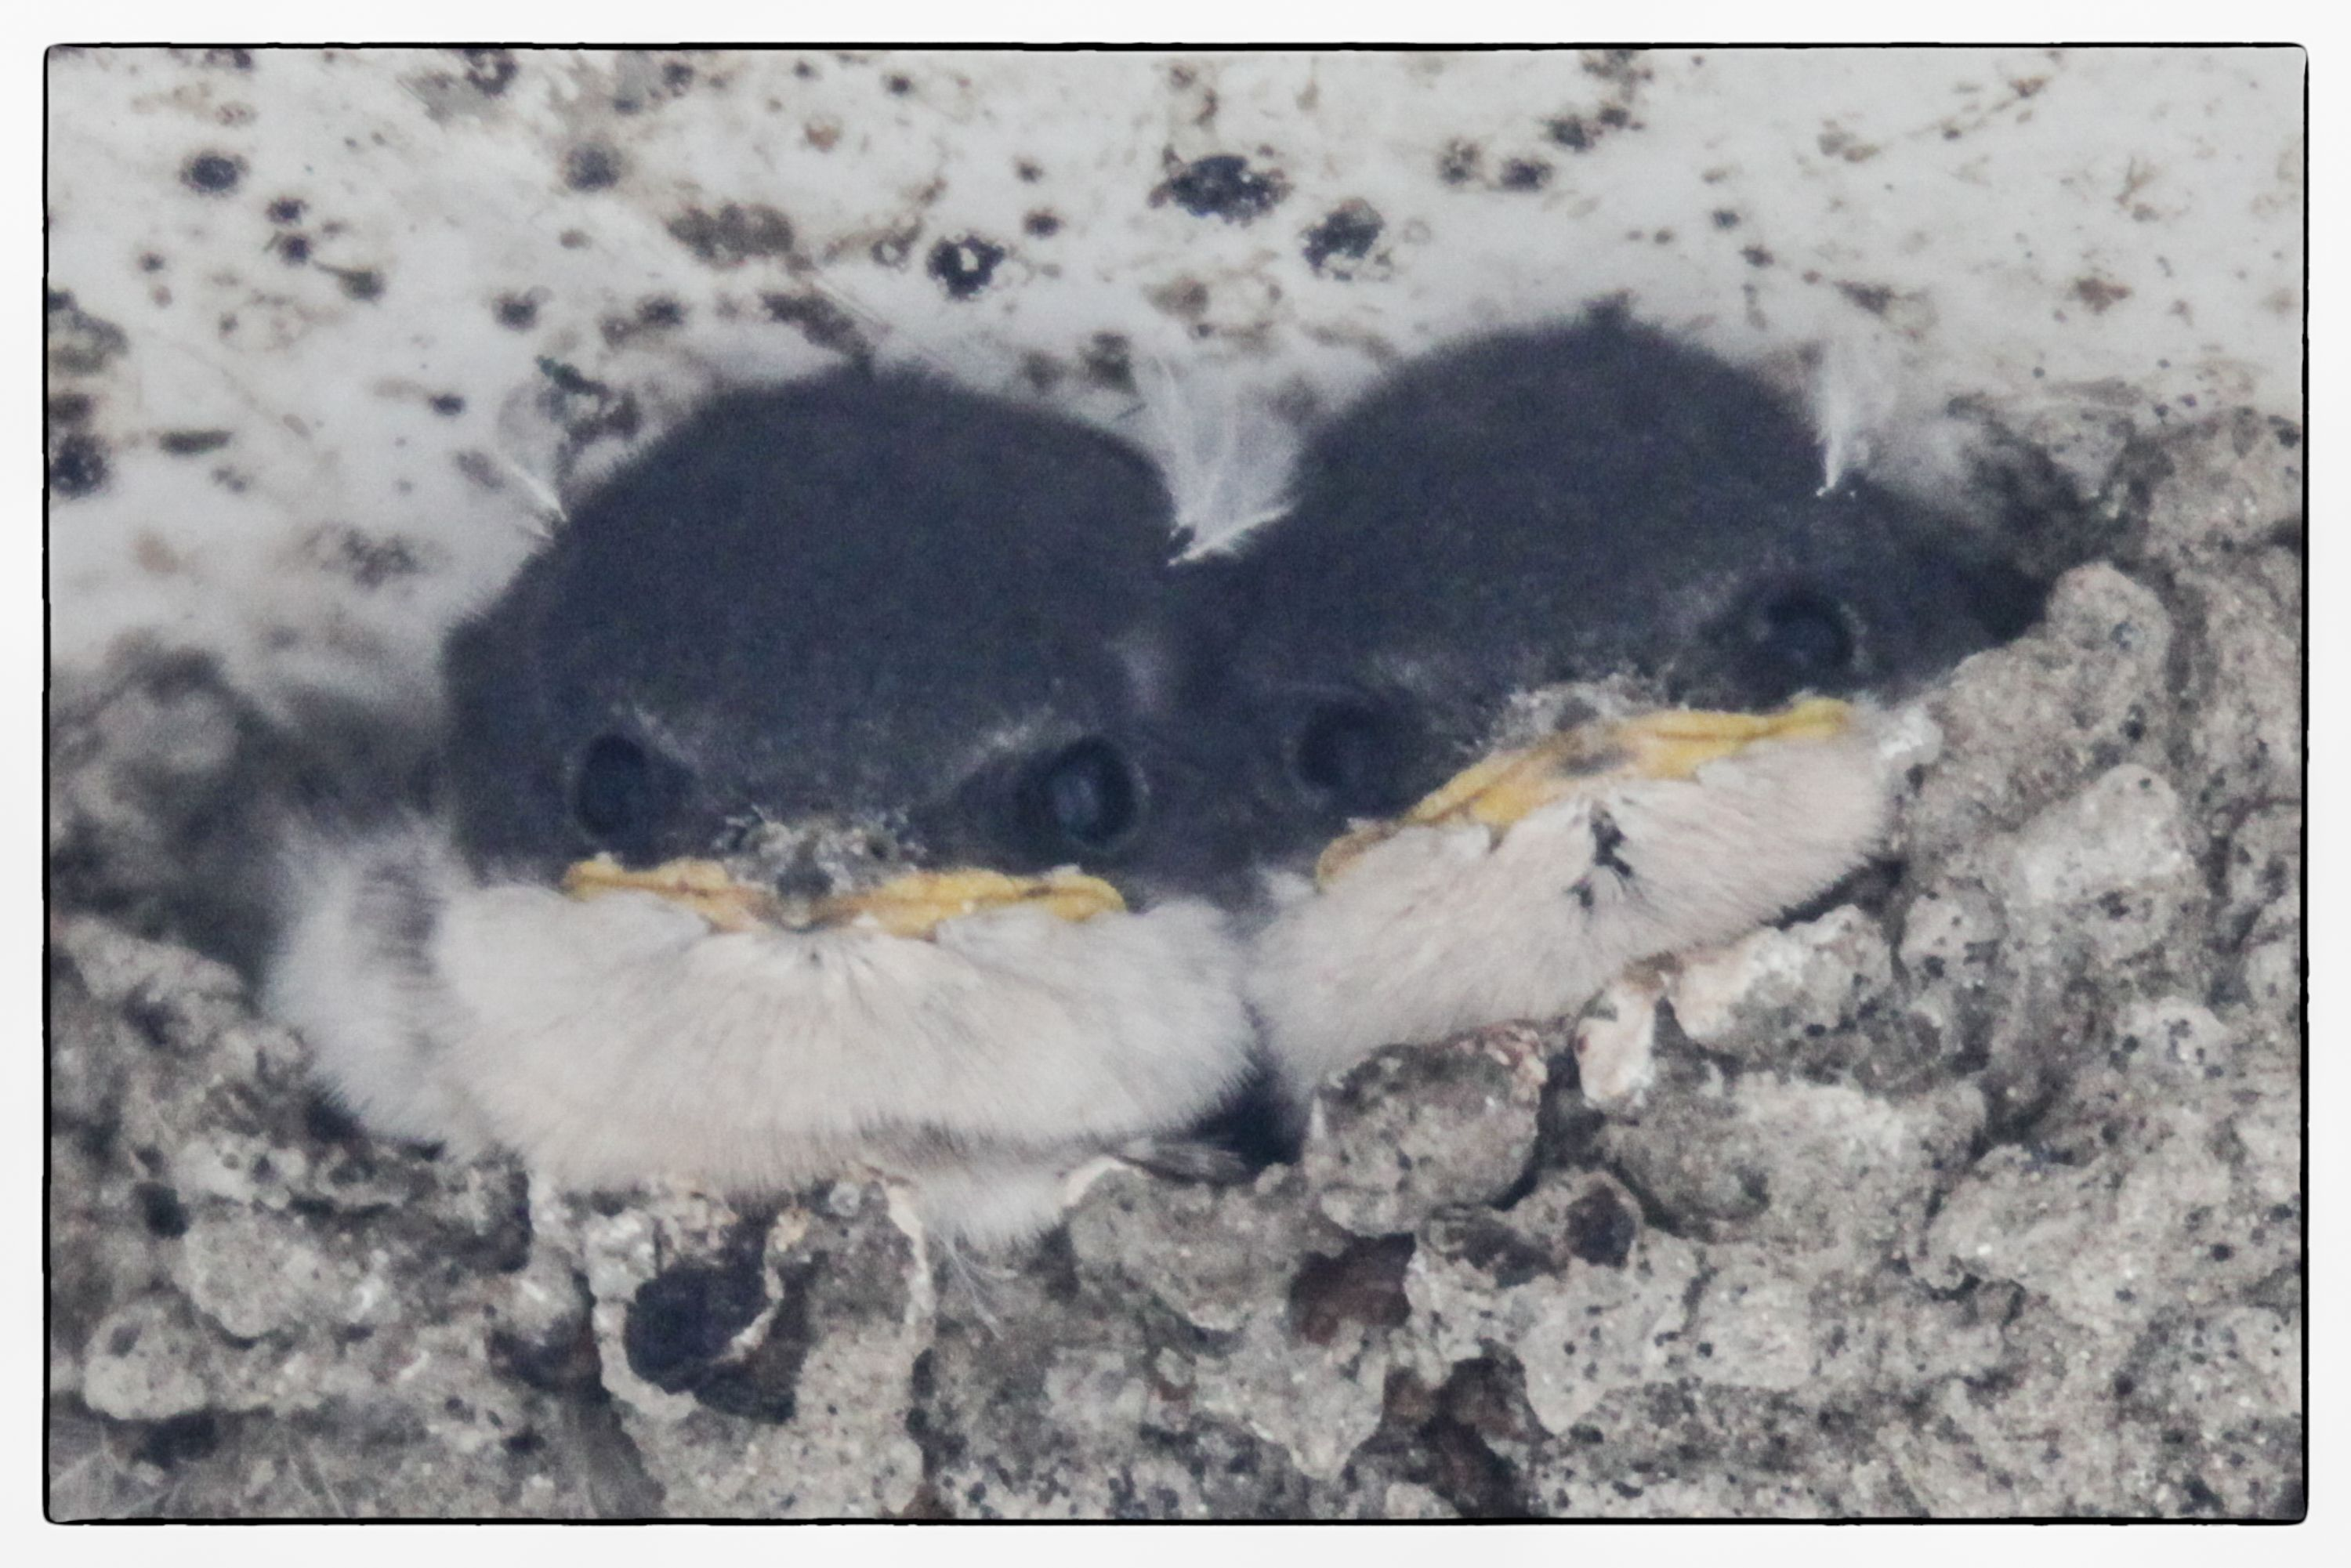 A pair of fearless housemartin babies staring me out this morning   at close range!